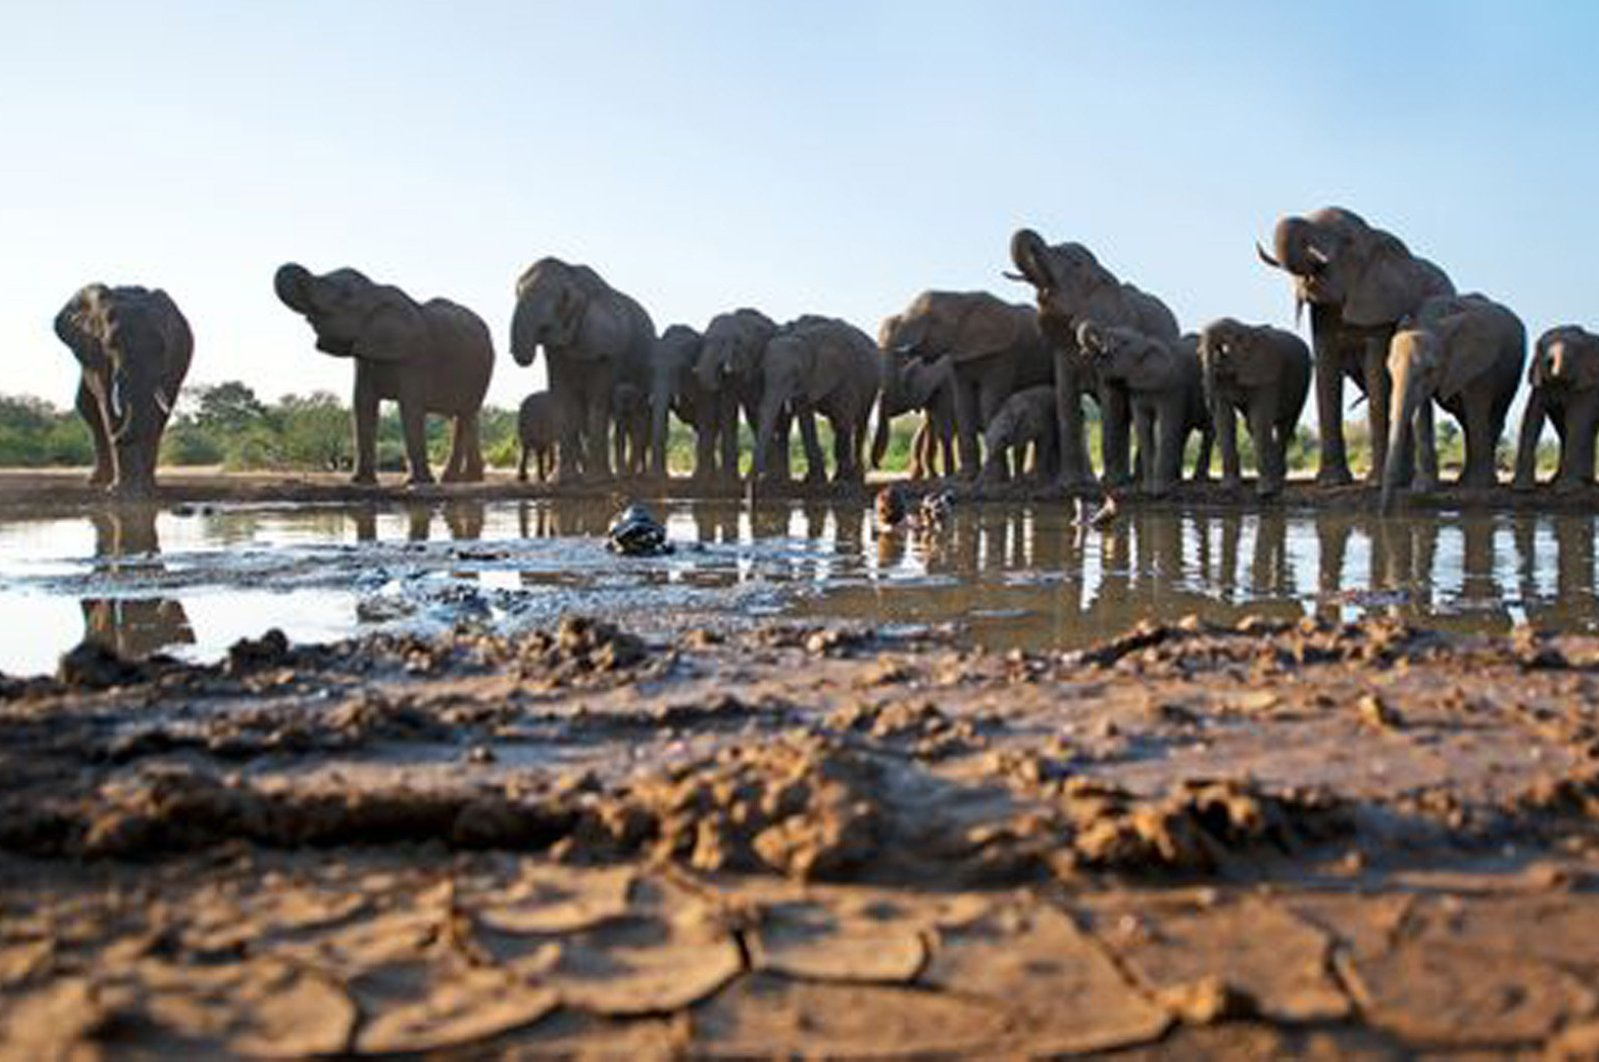 An undated photo shows a herd of elephants in Botswana. (File Photo)